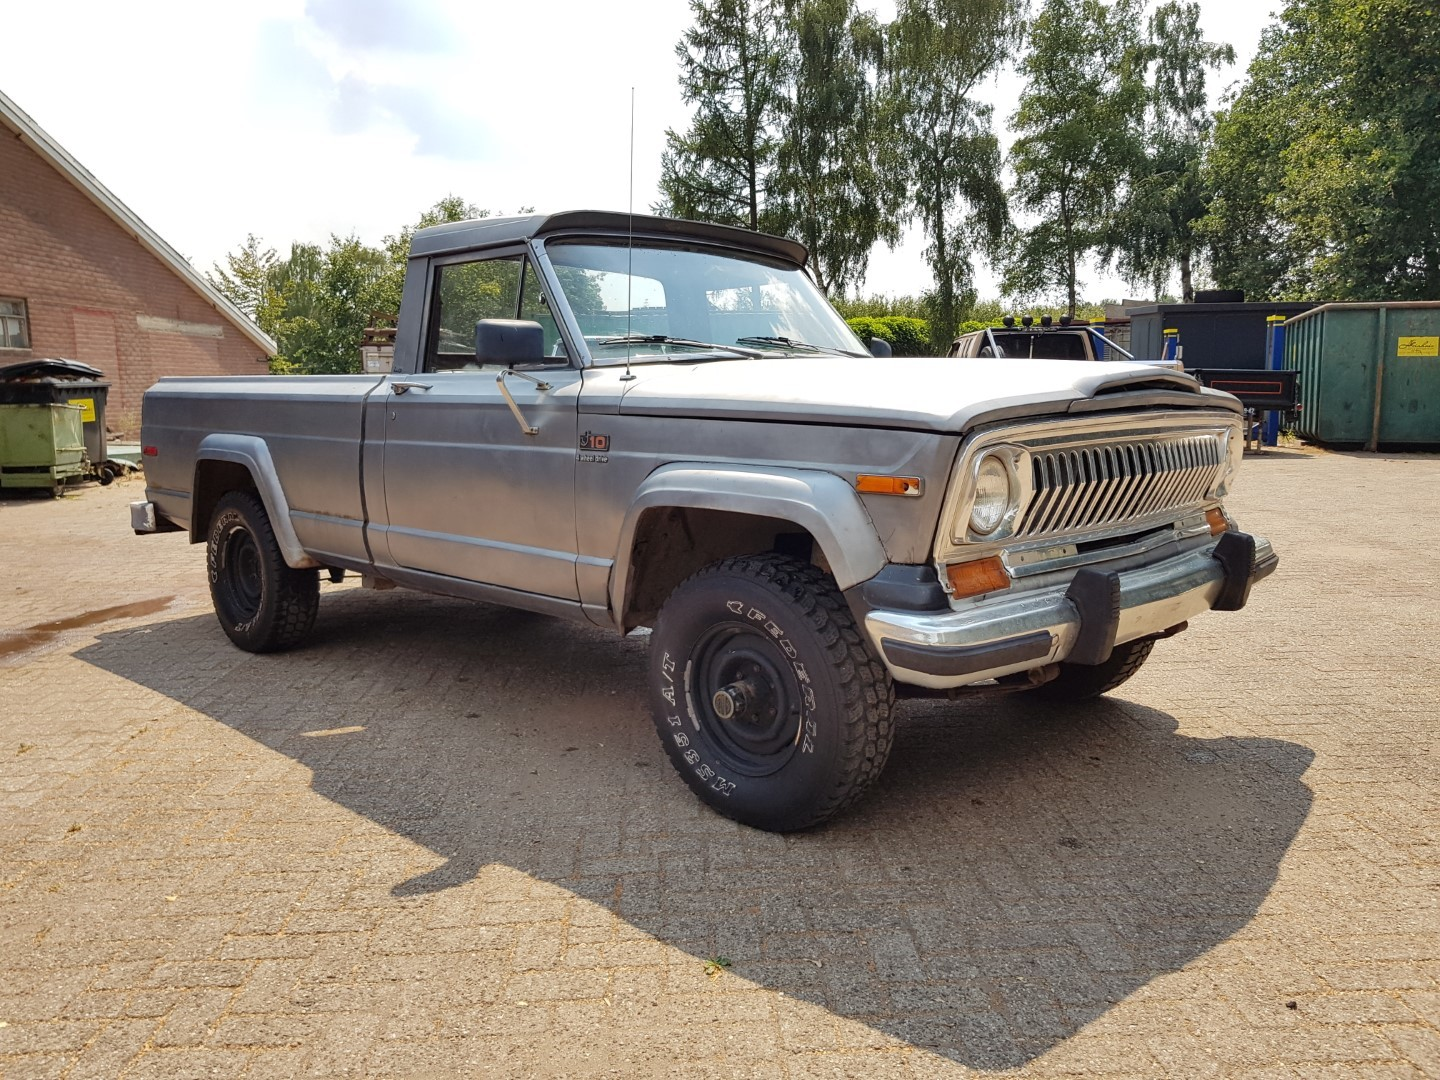 1978 Jeep J10 pickup 258ci (12)